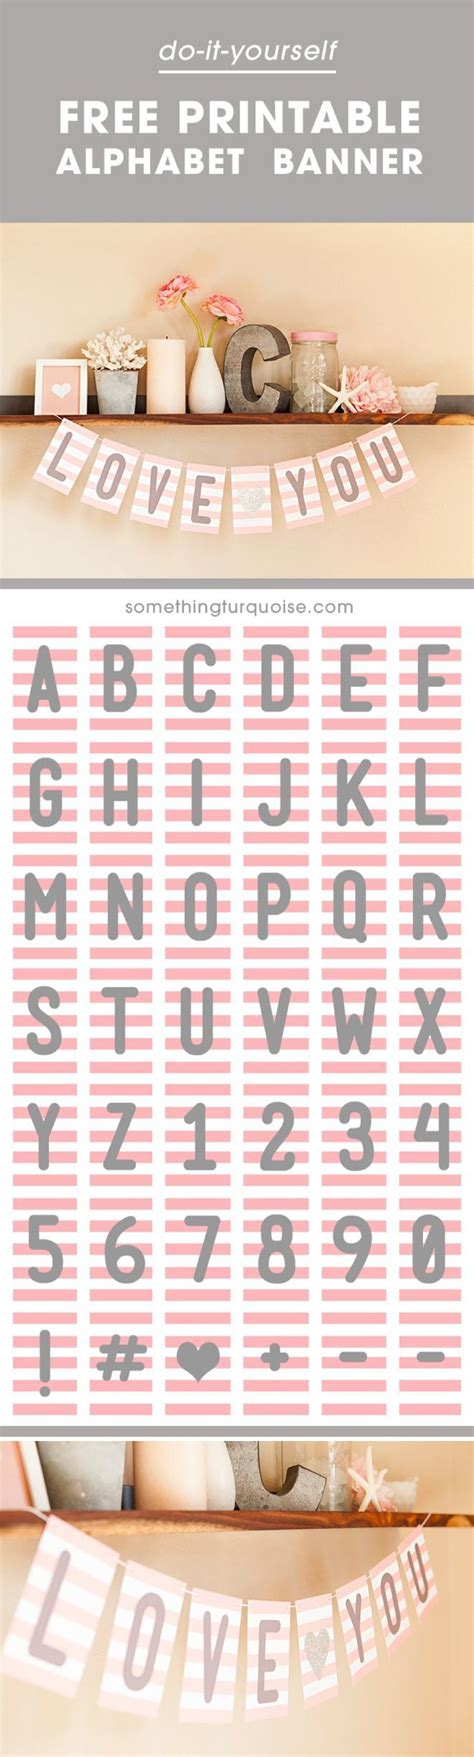 number templates for banners free pink gray printable alphabet and number banner